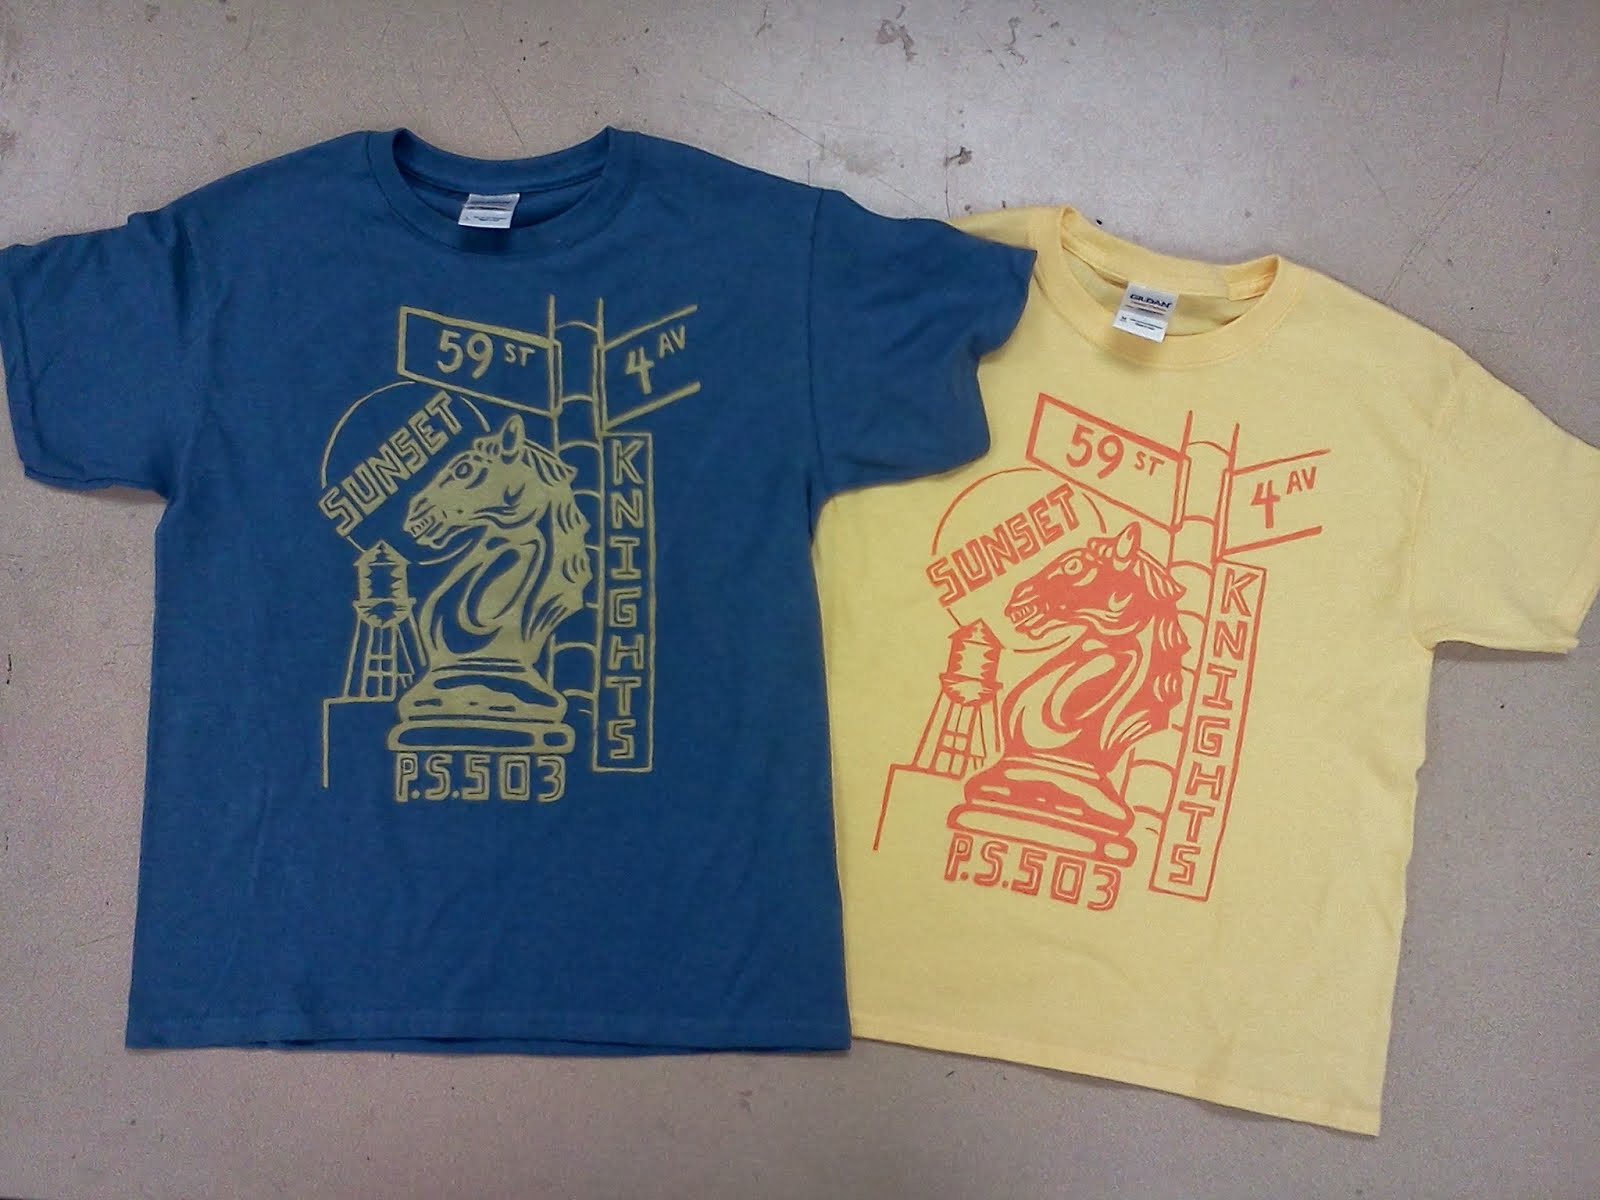 Sunset Knight T-shirts only $15 (shipping inc.)!  Click on the T-shirt pic to order.